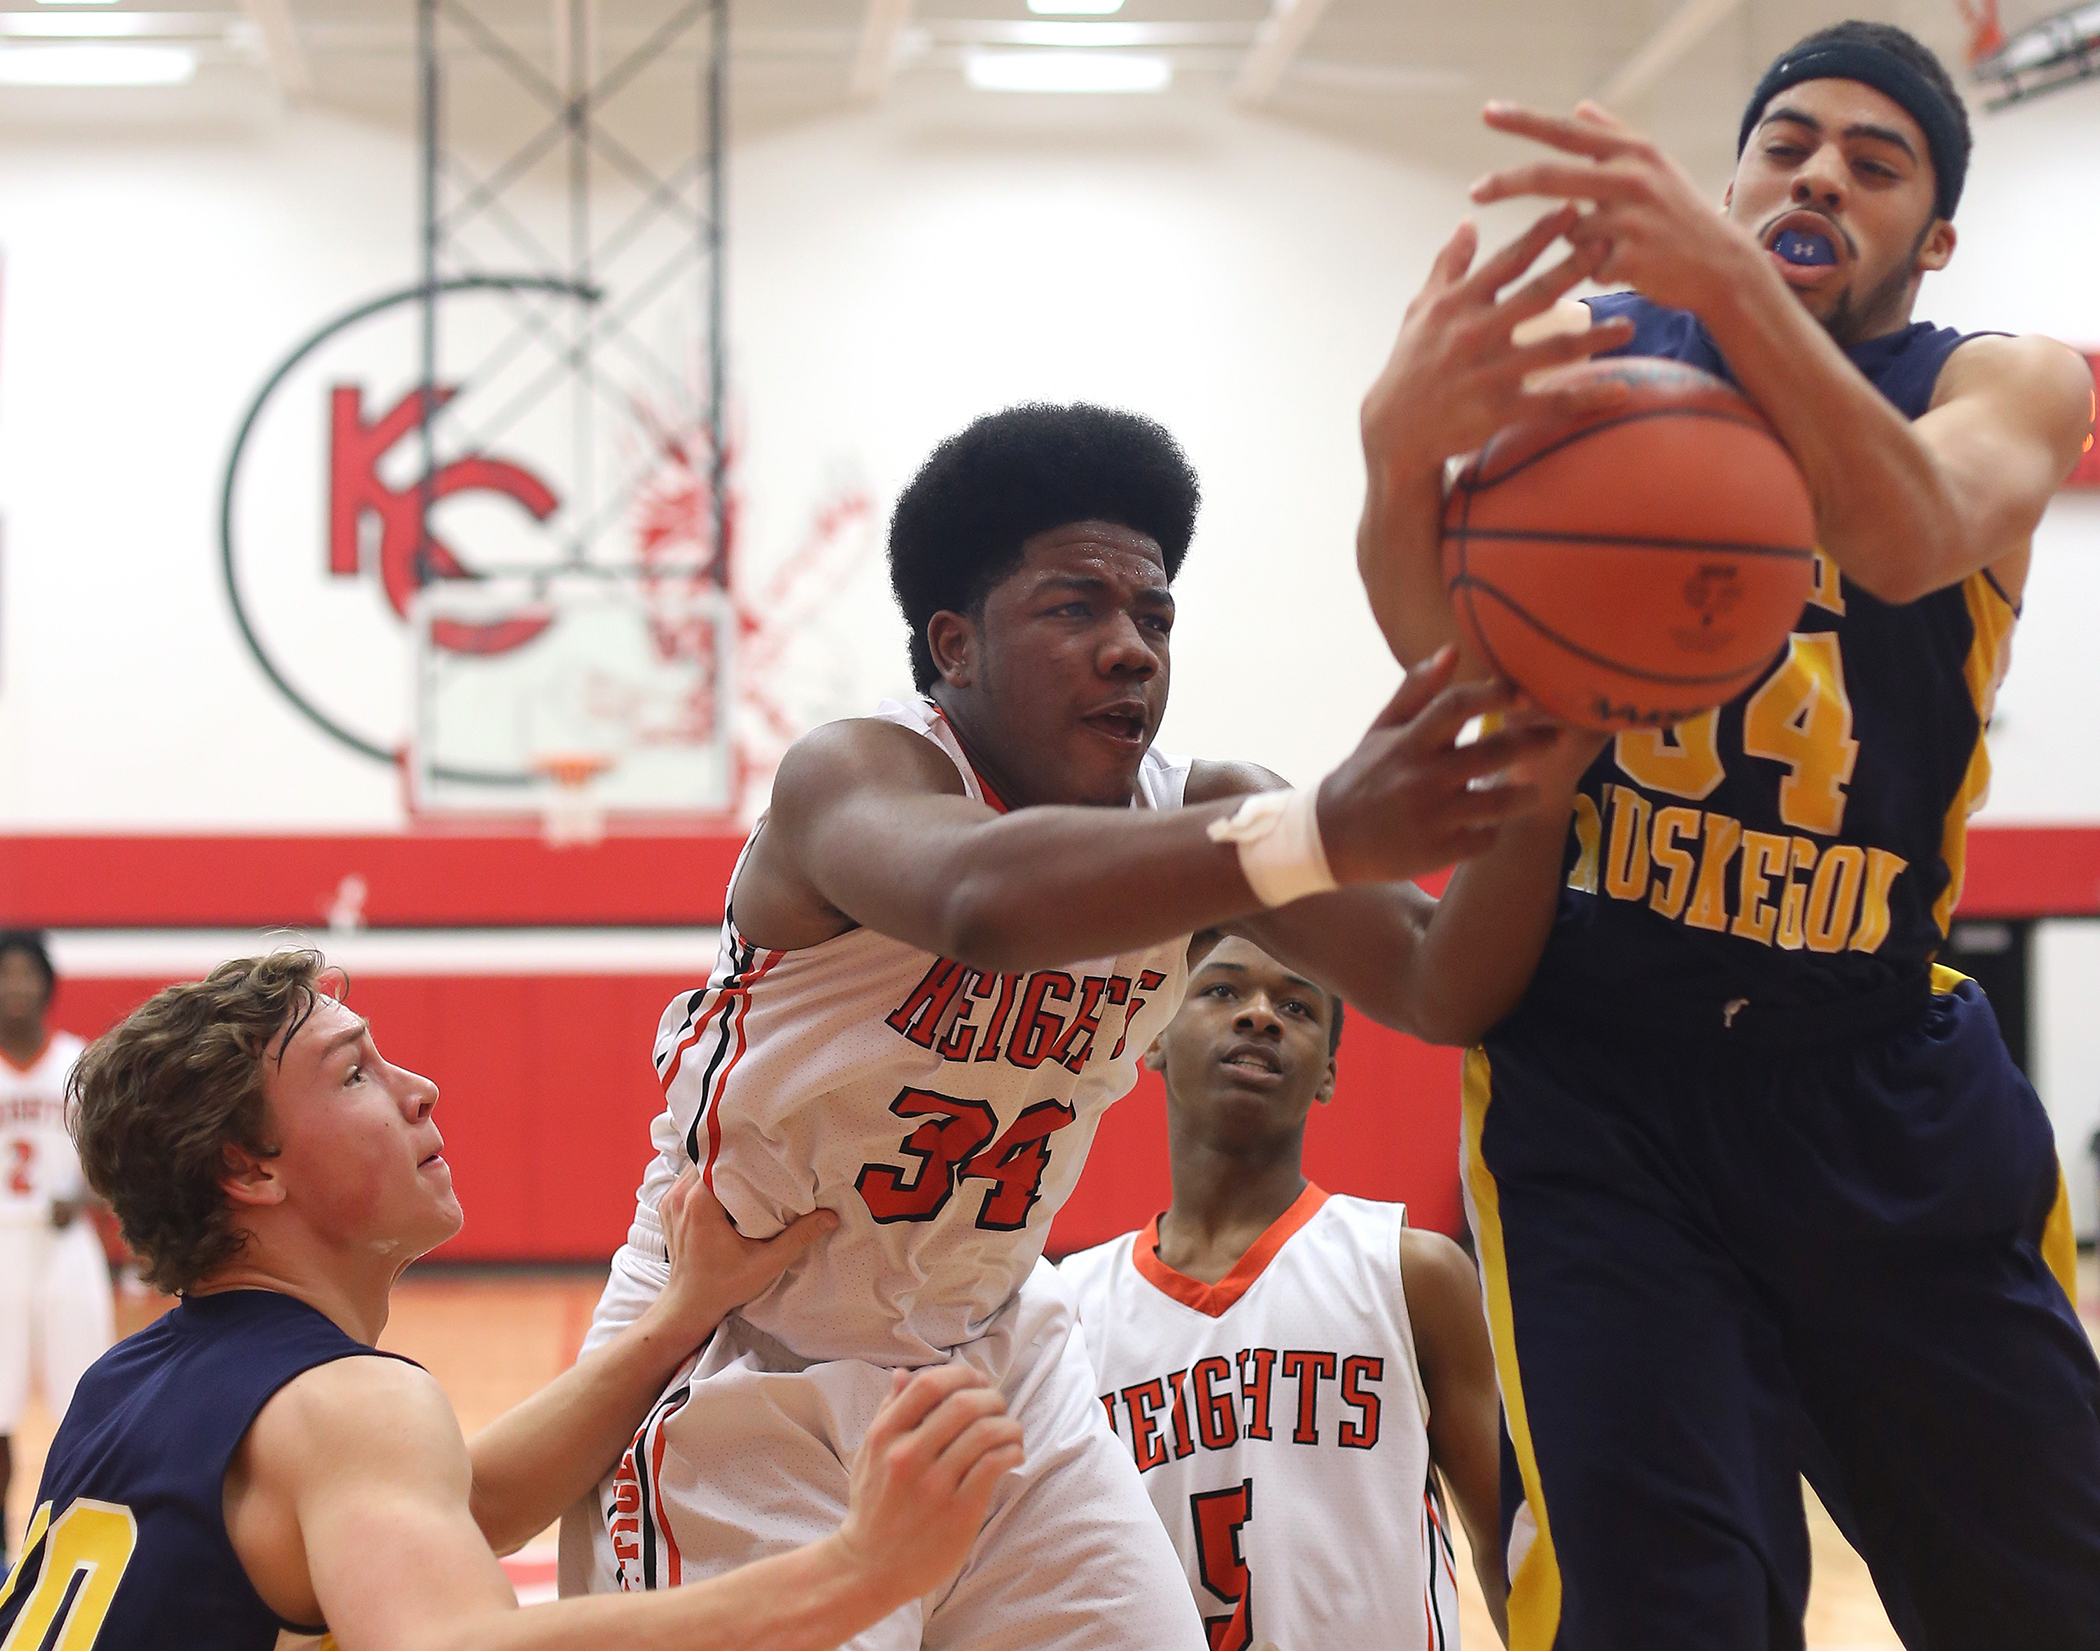 Keishon Watson (34) of Muskegon Heights Academy and Vernonell Smith of North Muskegon, right, fight for the rebound in the second quarter of their game at Kent City High School Friday, March 13, 2015. North Muskegon outscored the Tigers in a back-and-forth game to pull out the win and break the 12-year district drought.